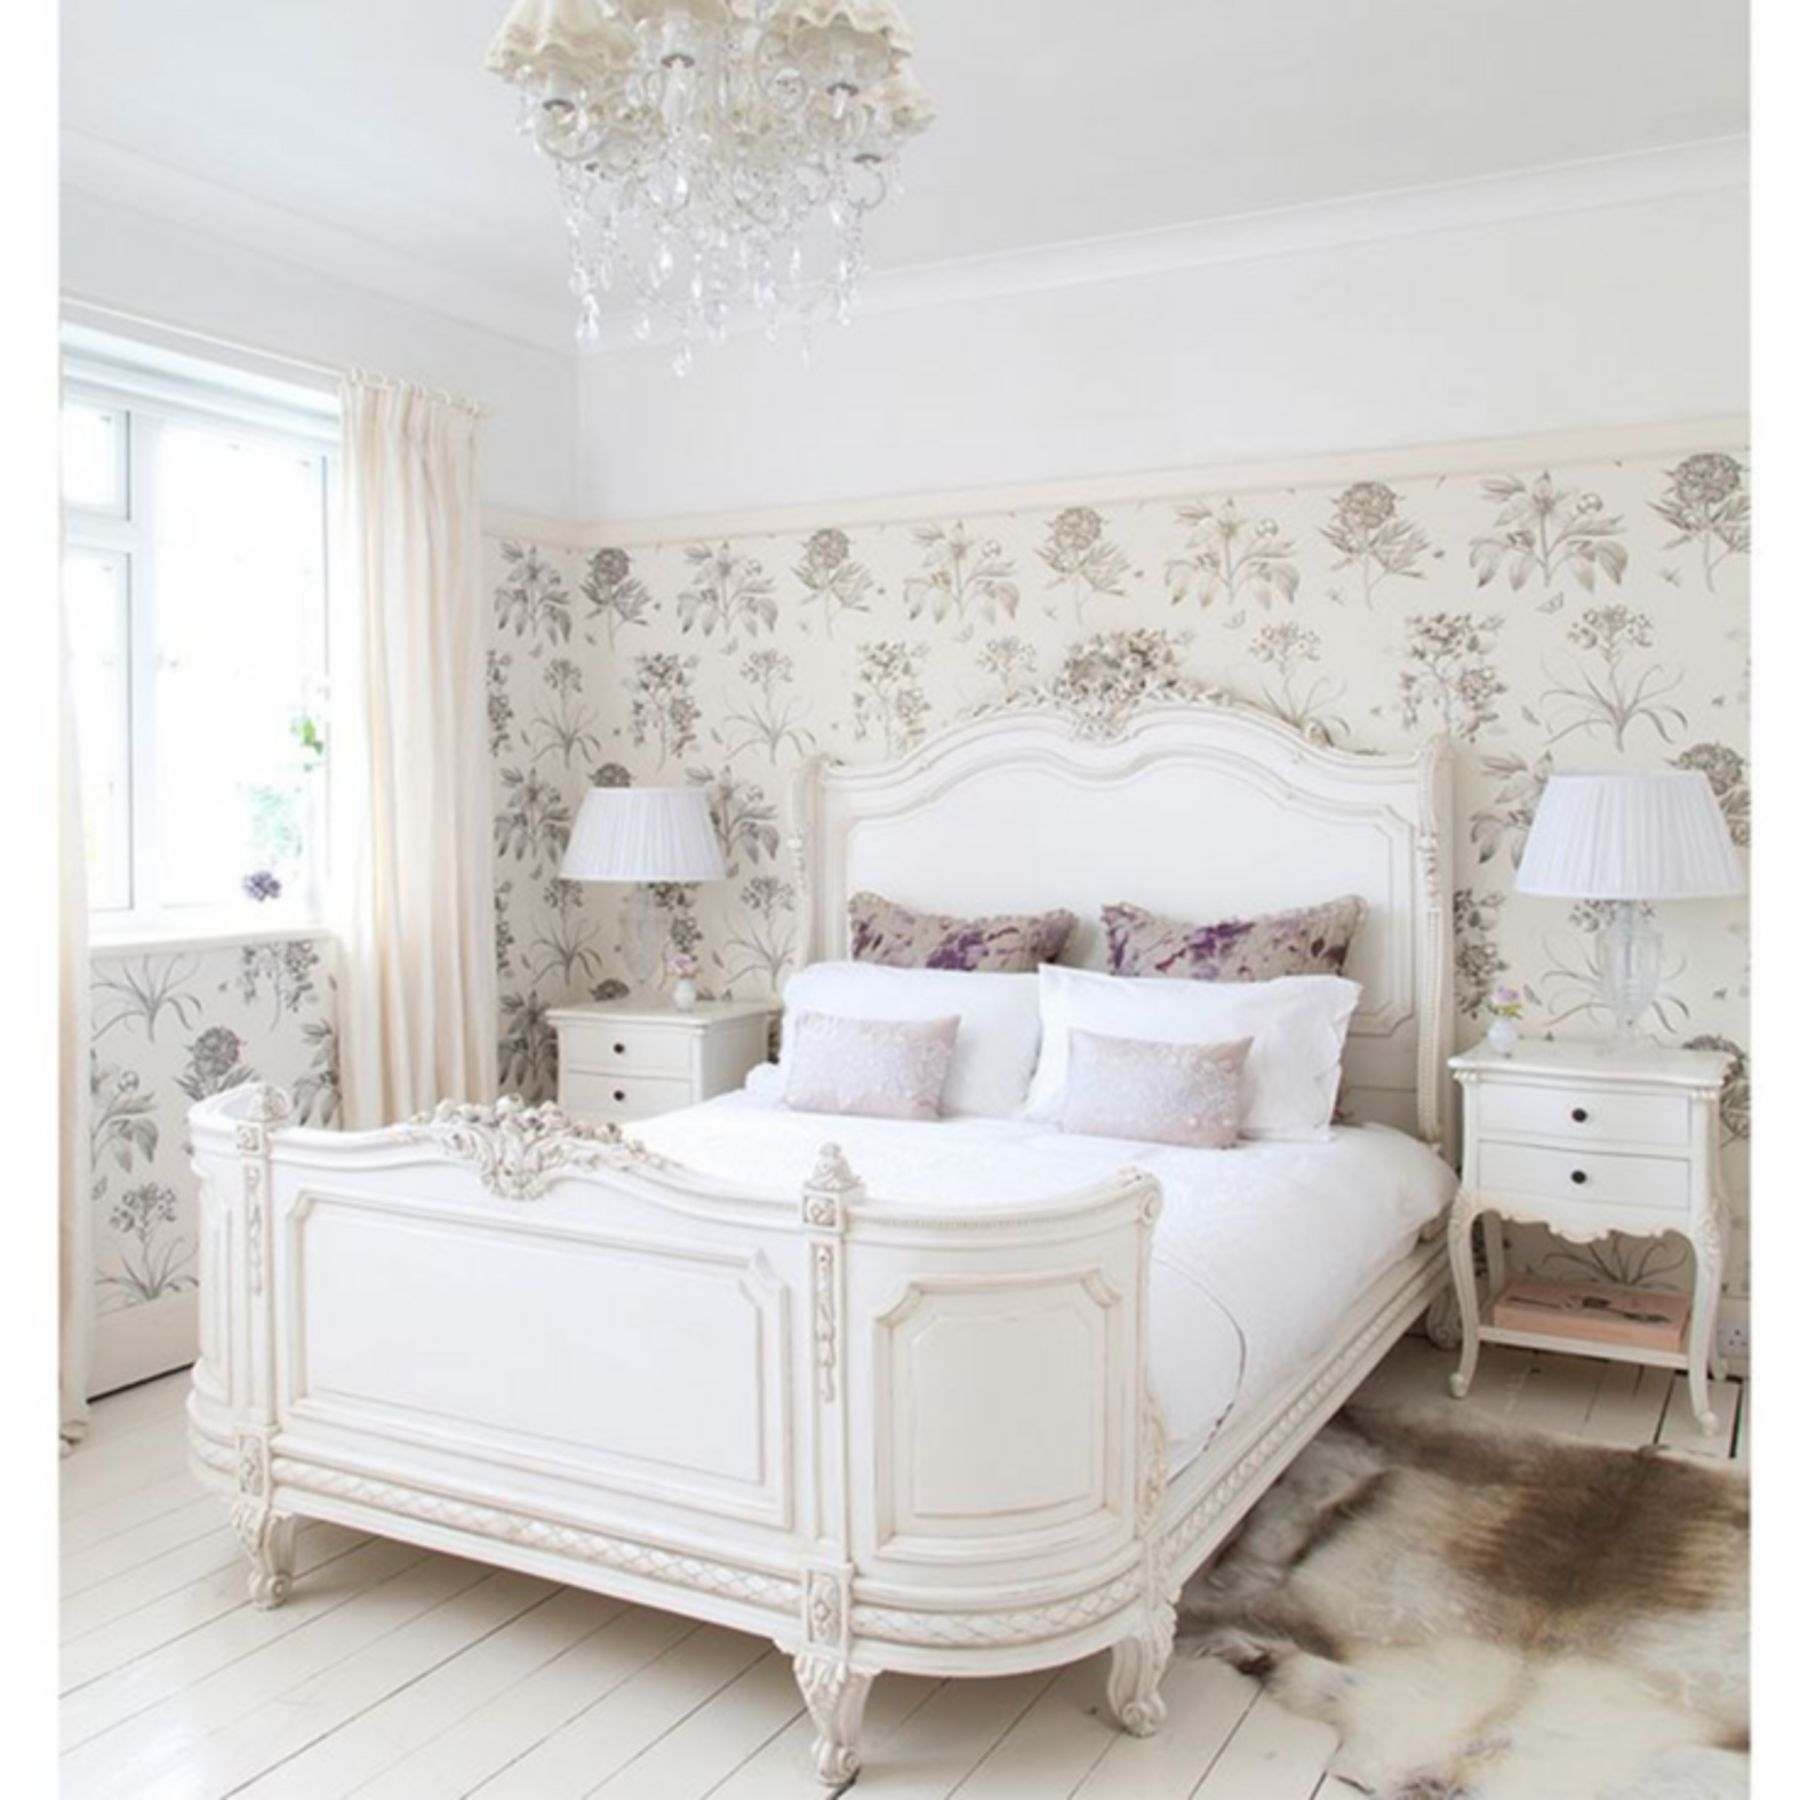 4 Elegant French Home Decoration Styles For Best Decor Solutions